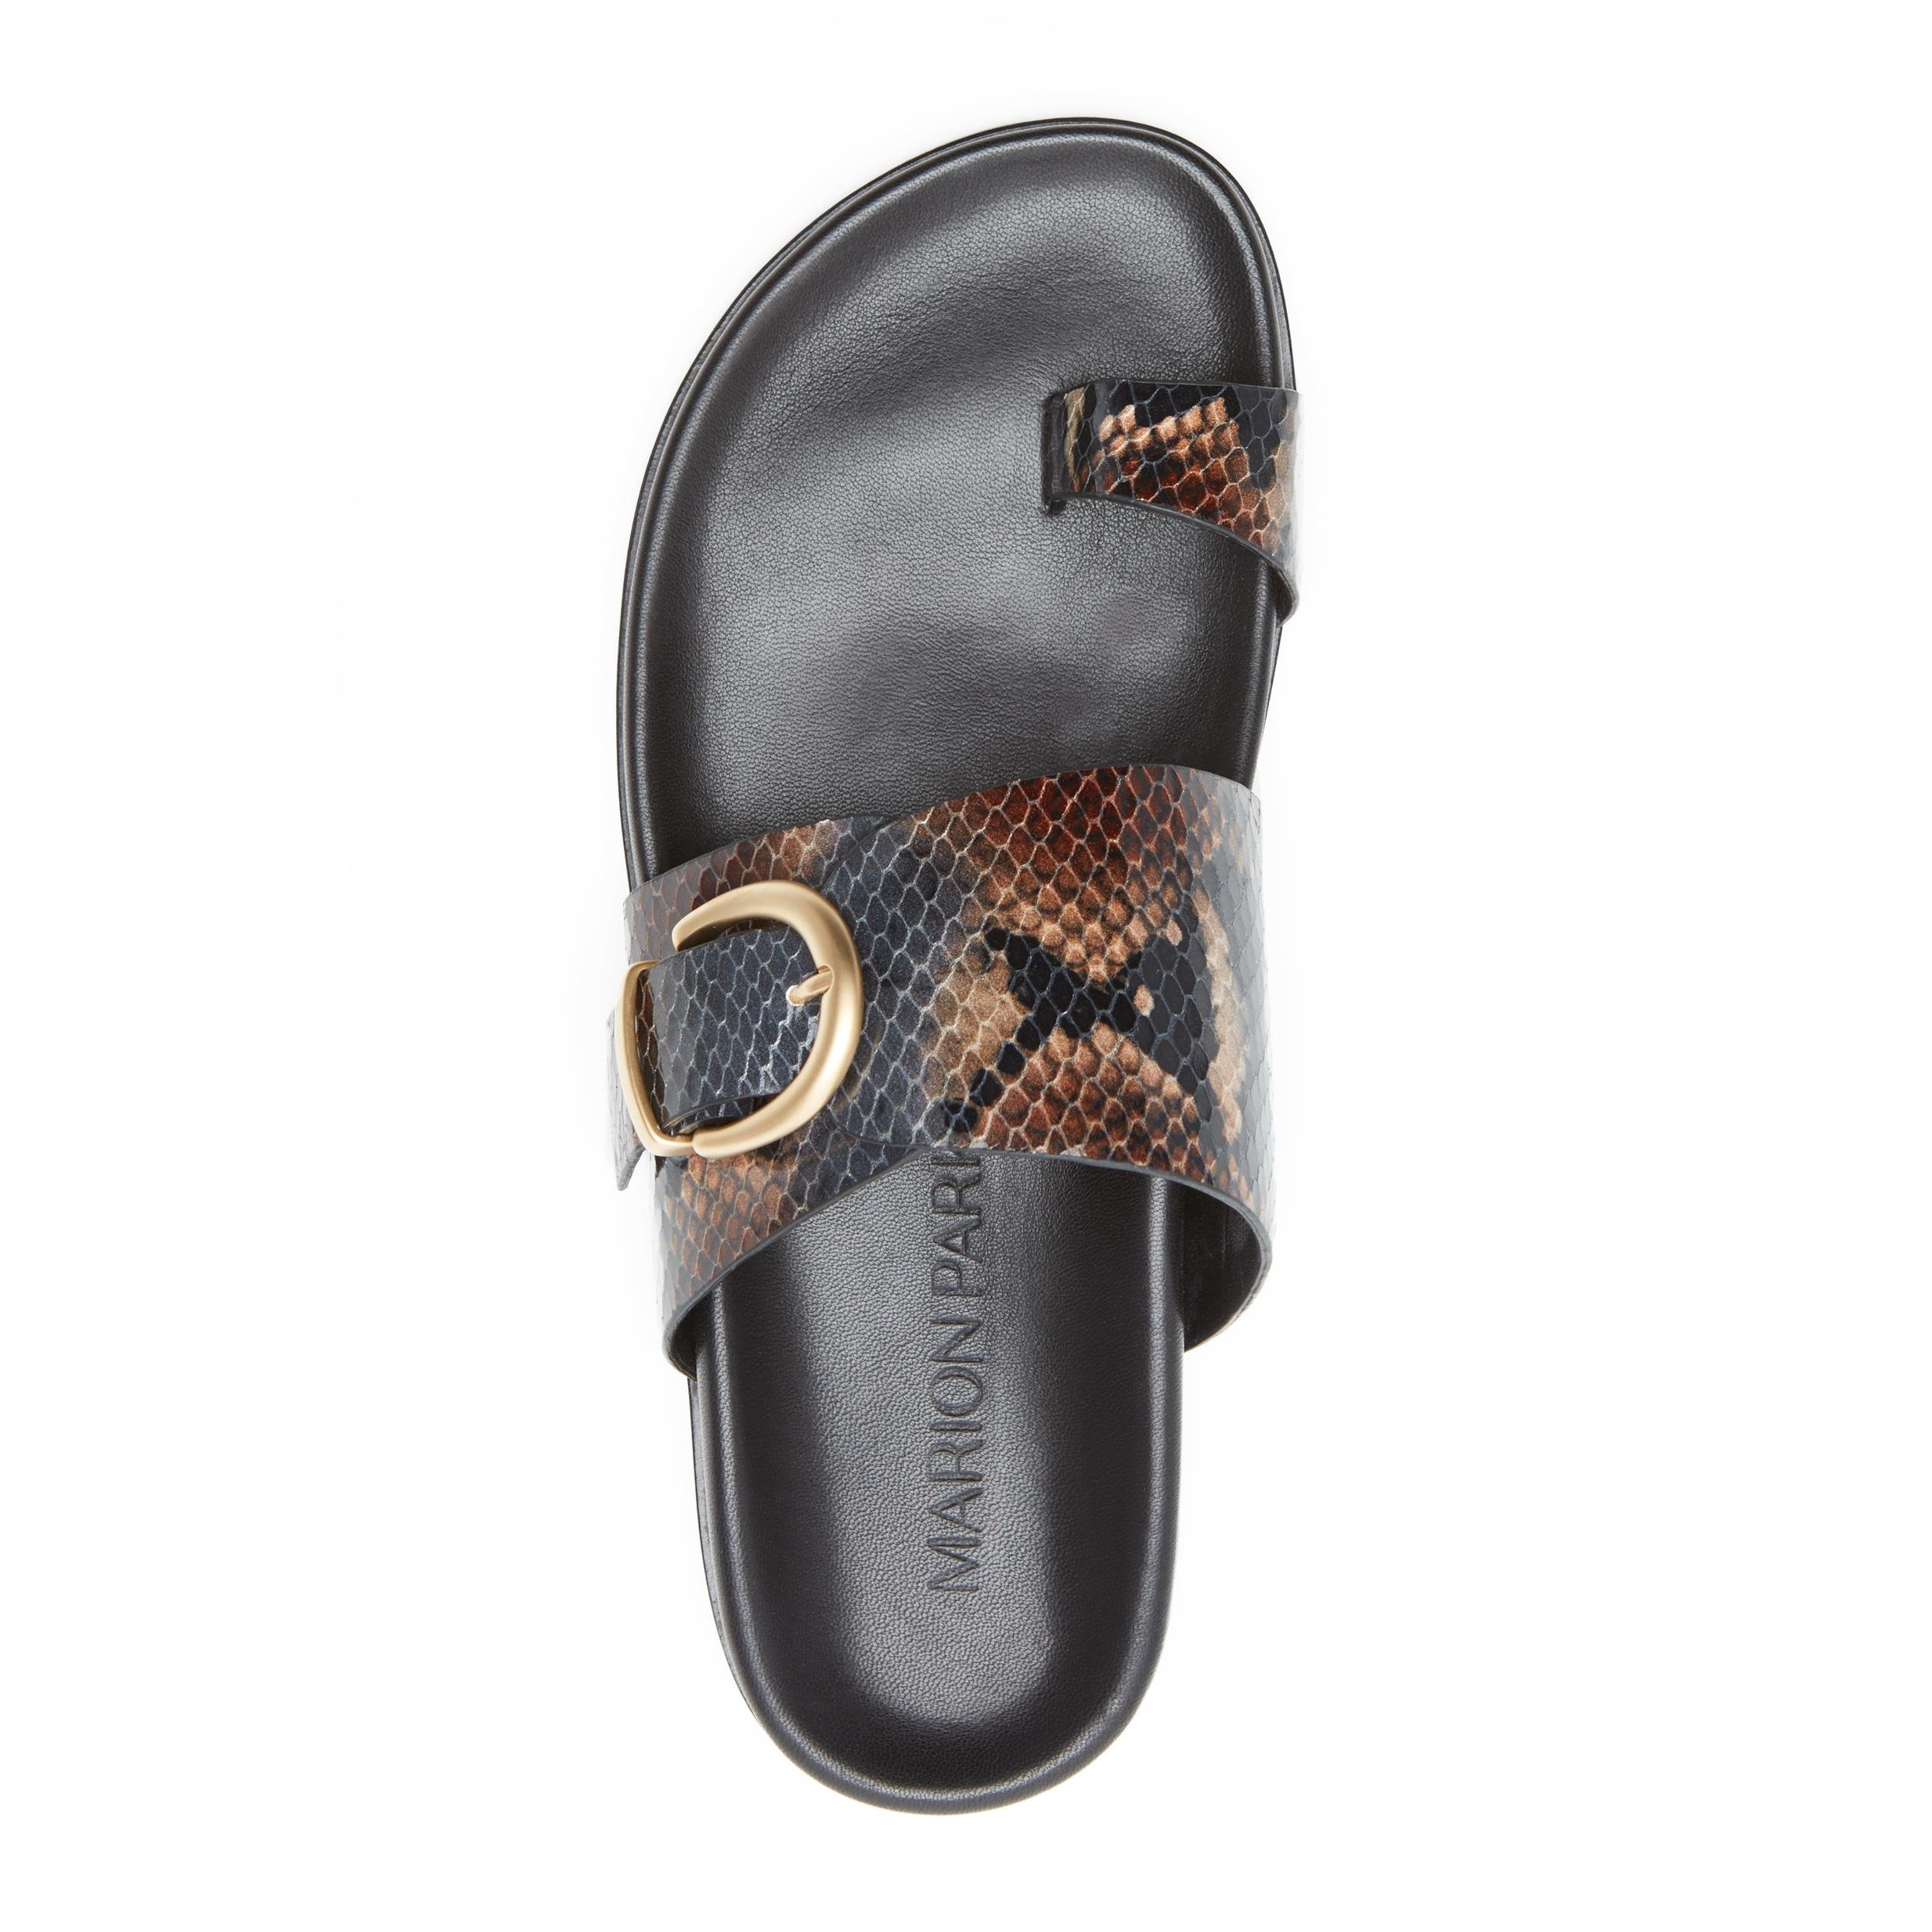 Cyrus   Leather Slide Sandal with Contoured Footbed 2